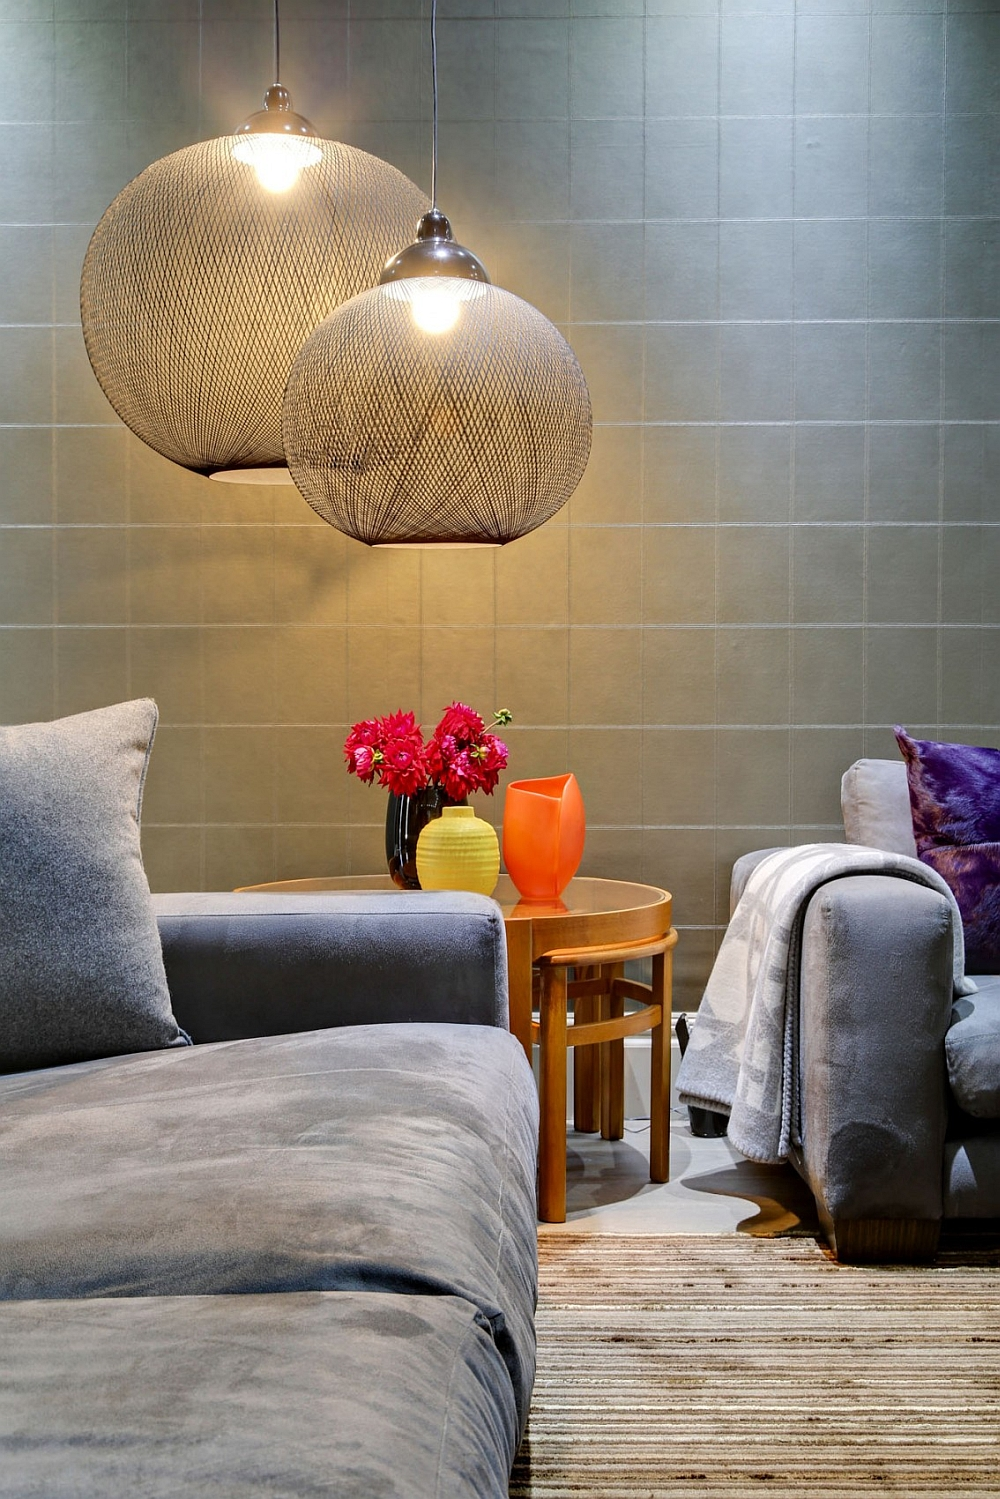 Beautiful Moooi pendants steal the show in the posh living space